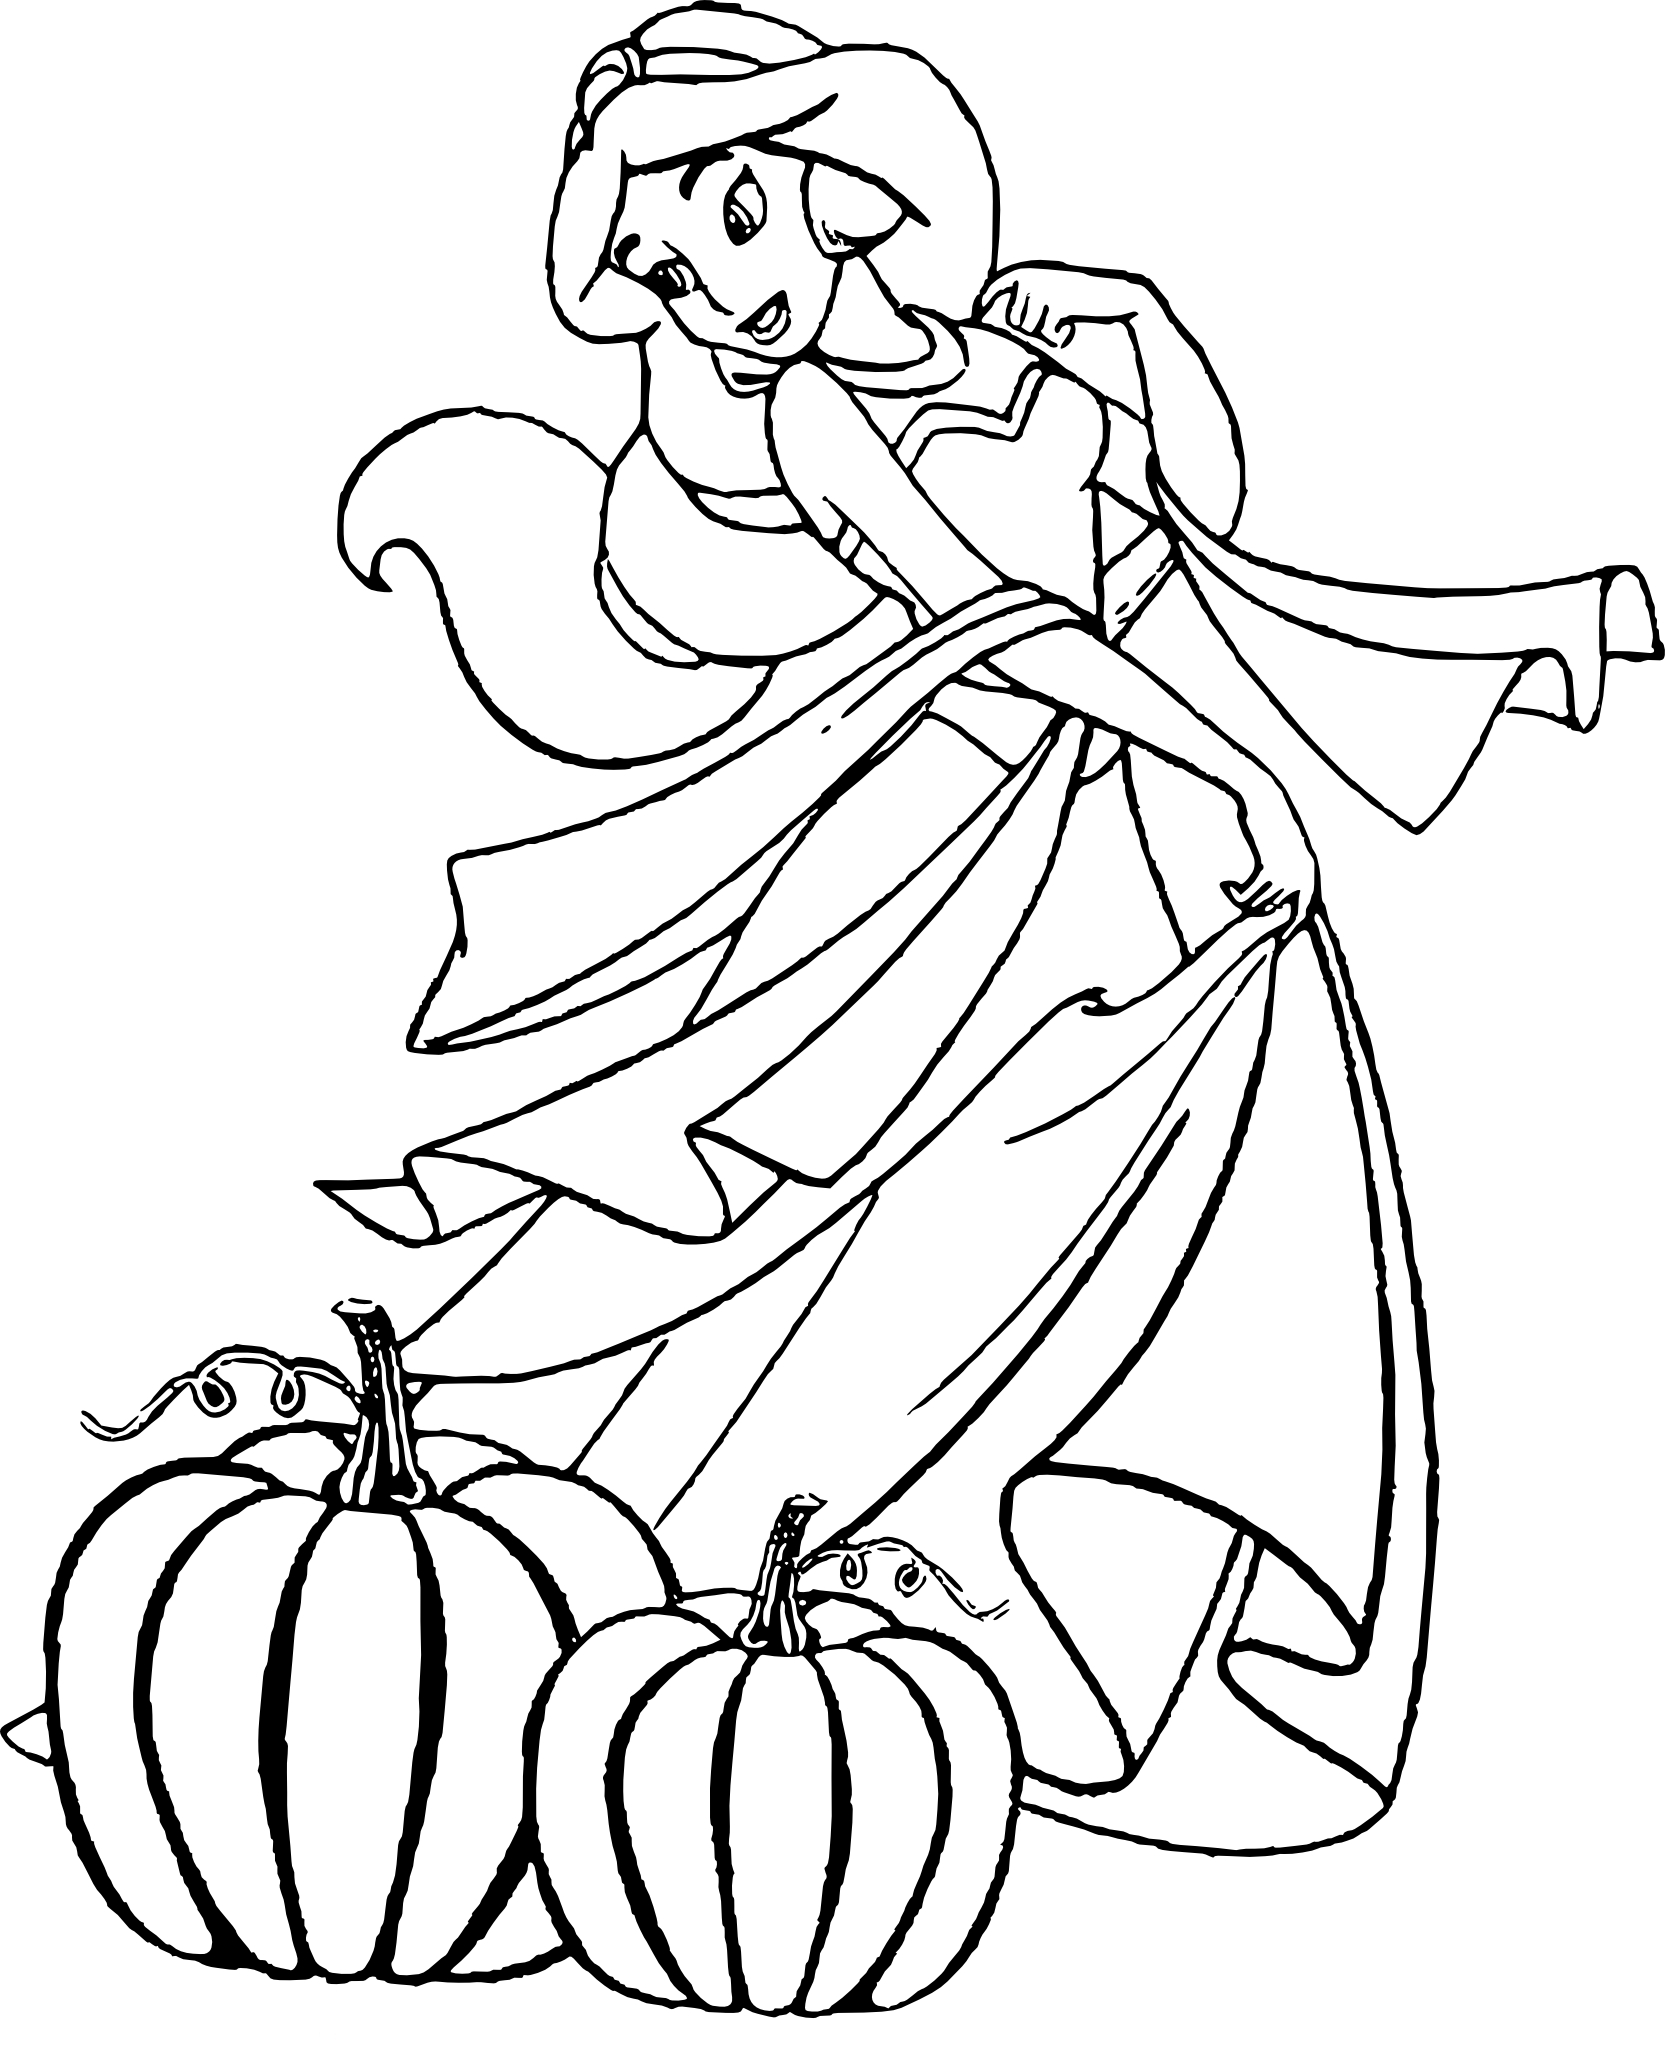 Cars coloring pages free printable 8x10 cars best free for Cars halloween coloring pages